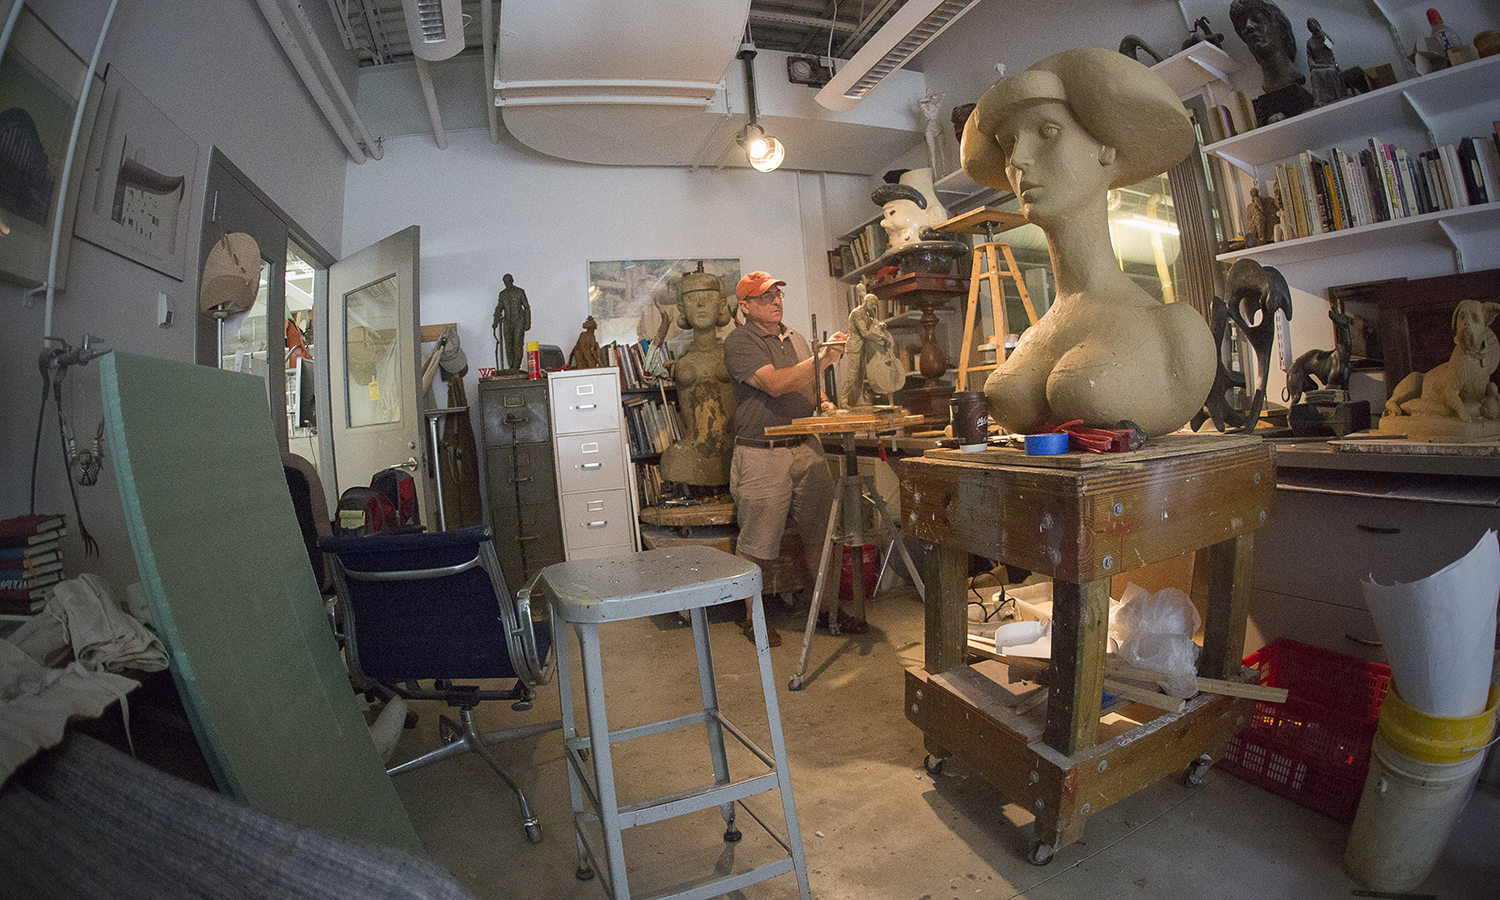 Professor of Art Ted Aub works on a model of famed local bassist Scott LaFaro, which will serve as reference for a full-scale sculpture, to be cast in bronze.  Geneva City council recently named April 3 'Scott LaFaro Day' in honor of his legacy.